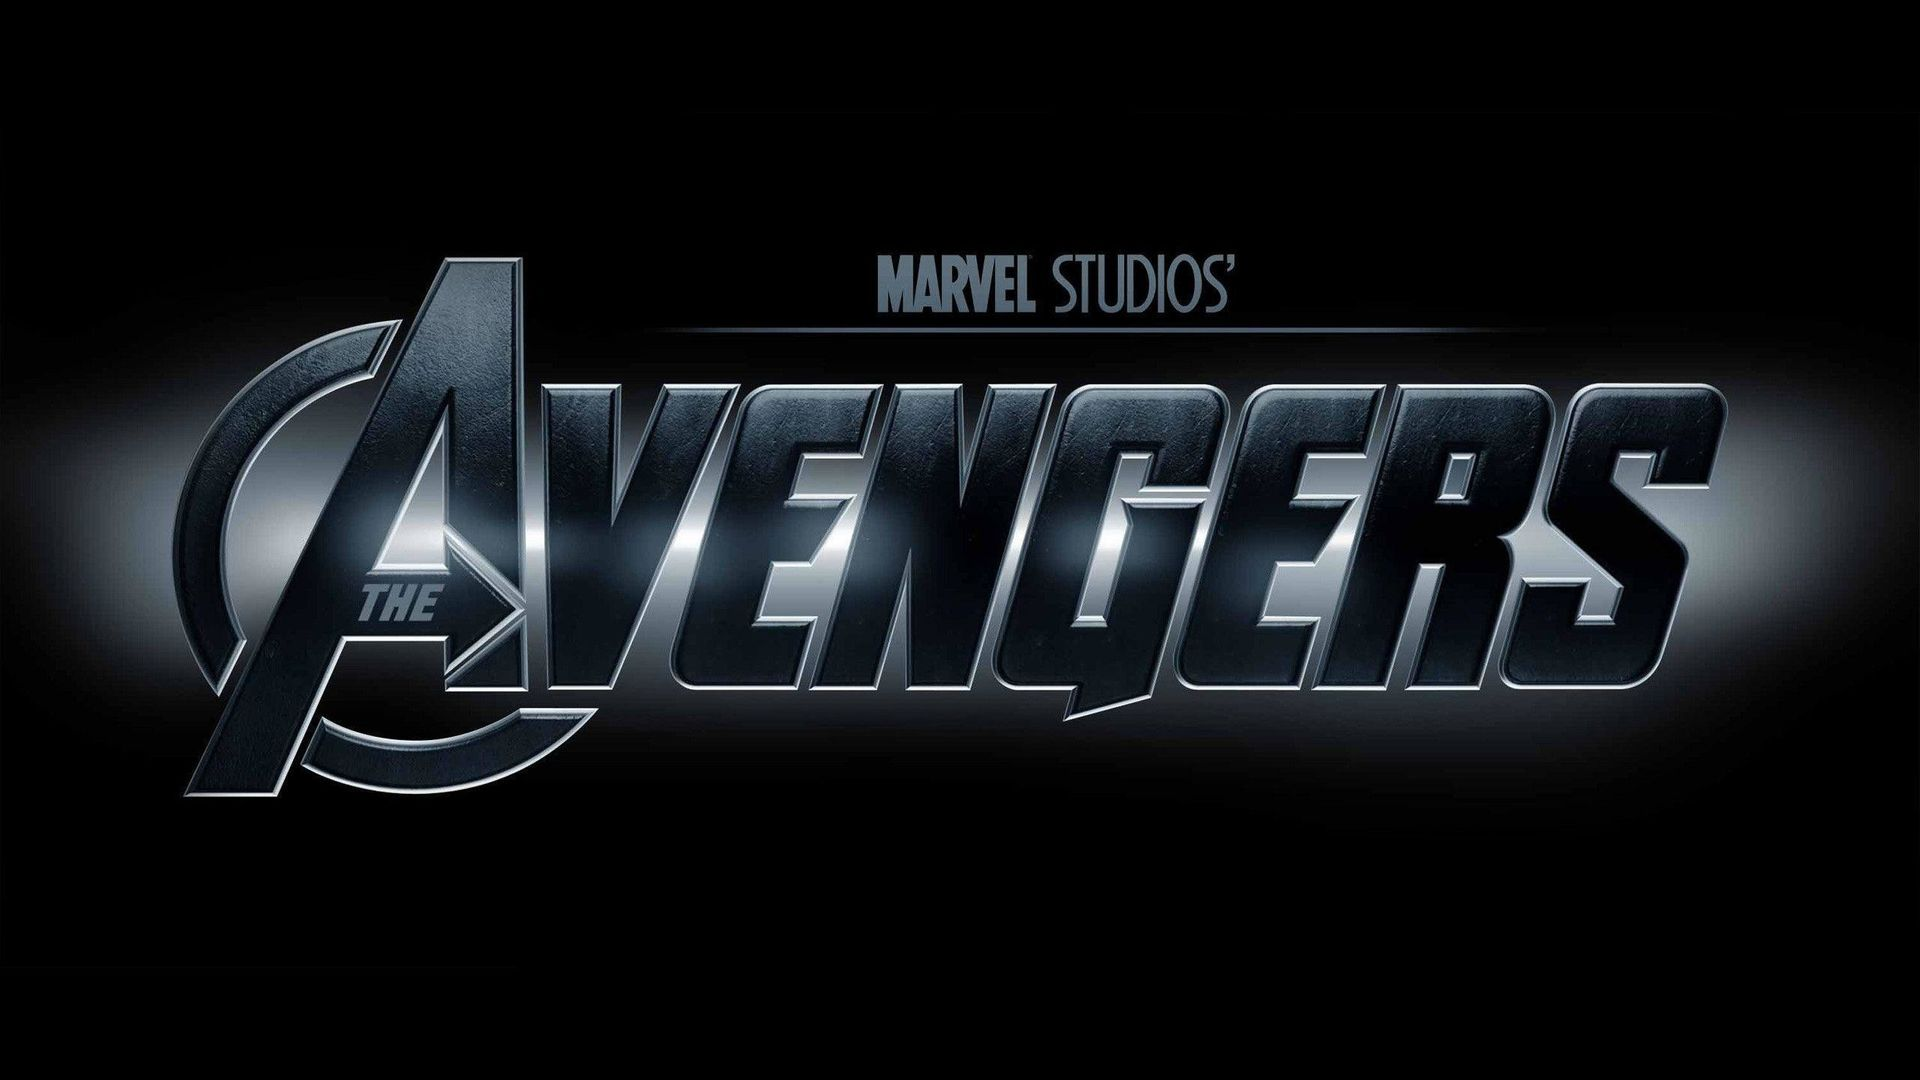 flick,full,background,retaliator,movies,backdrop,backcloth,logo,instinct,background signal,motion picture,background knowledge,avengers,film,ground